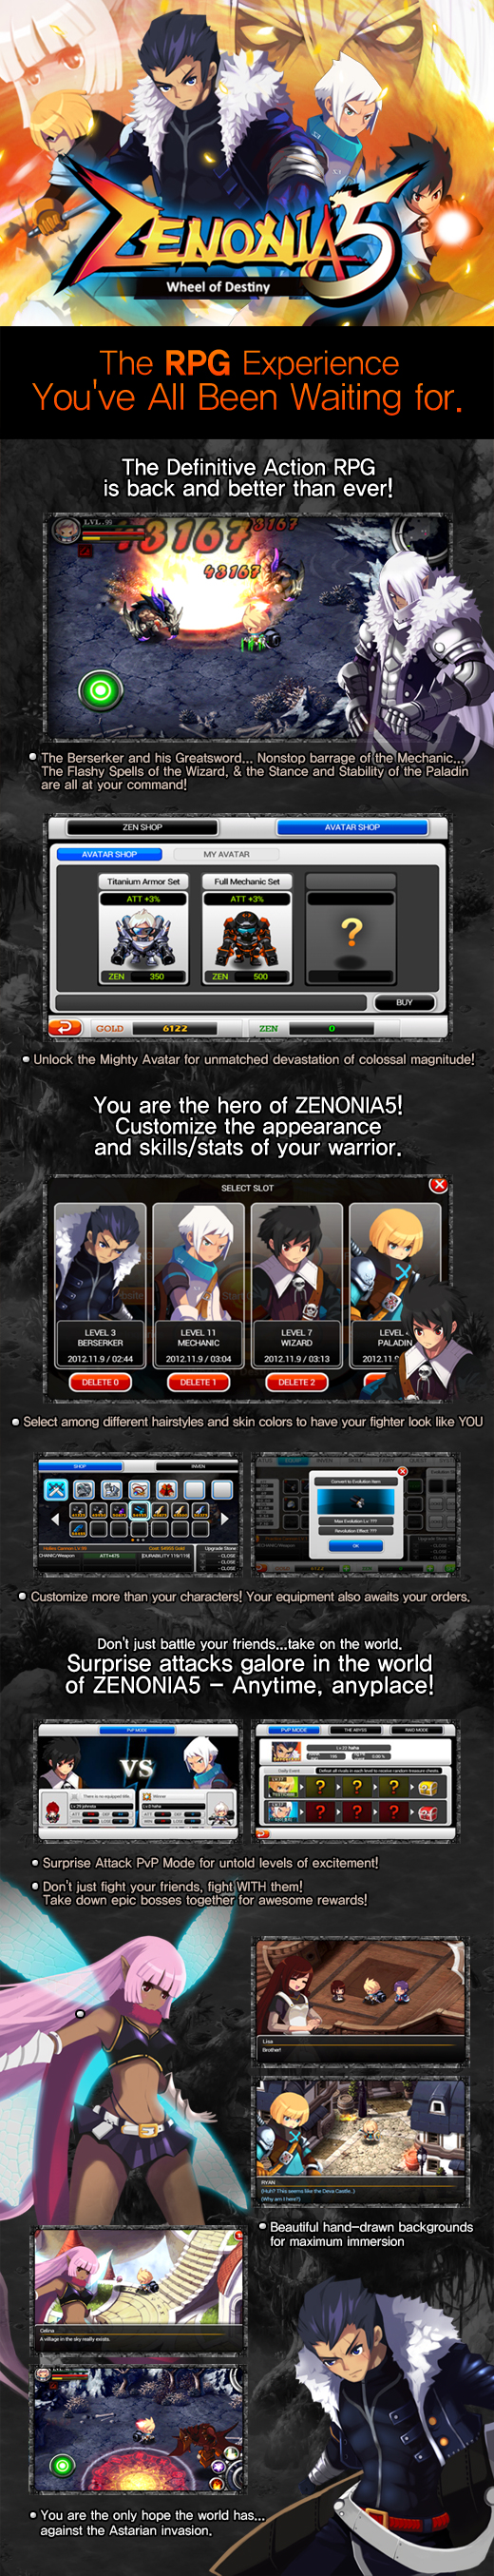 Game details zenonia 5 game details zenonia 5 voltagebd Images